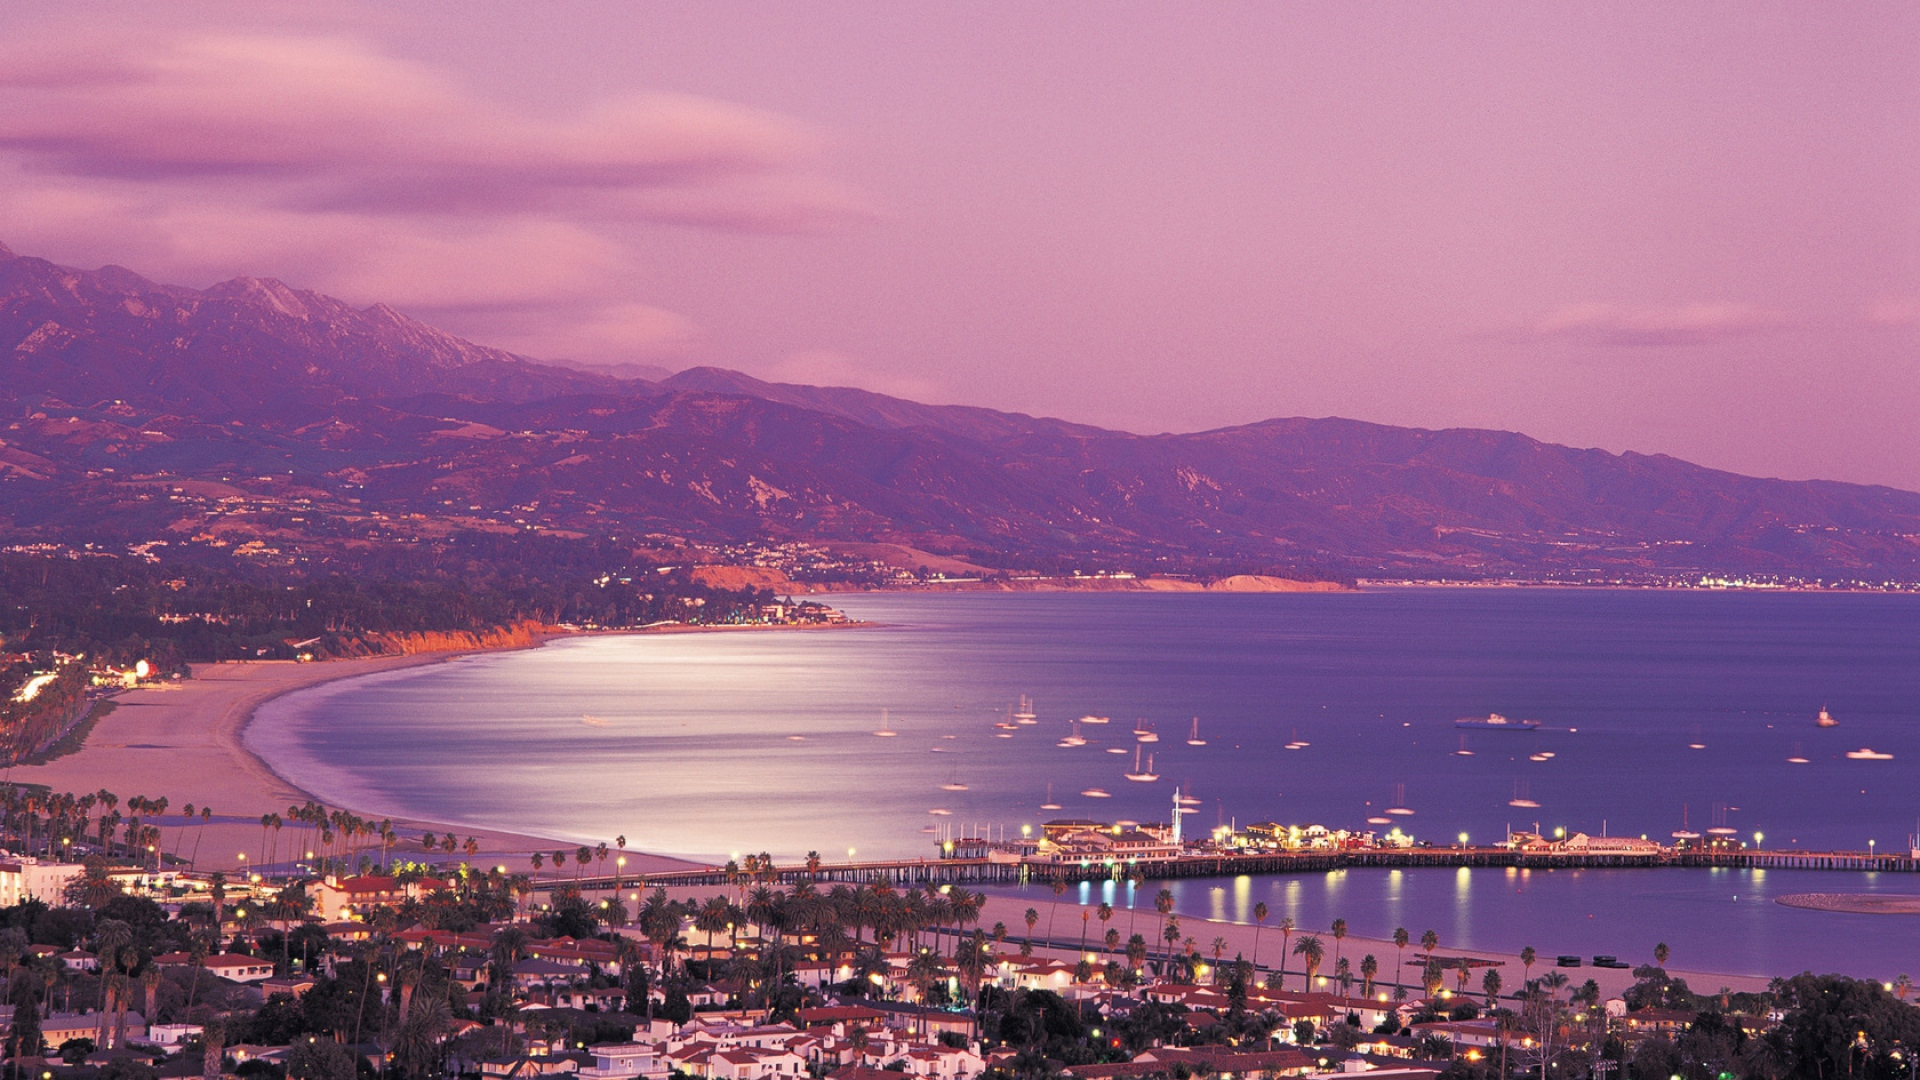 7.	Santa Barbara, California